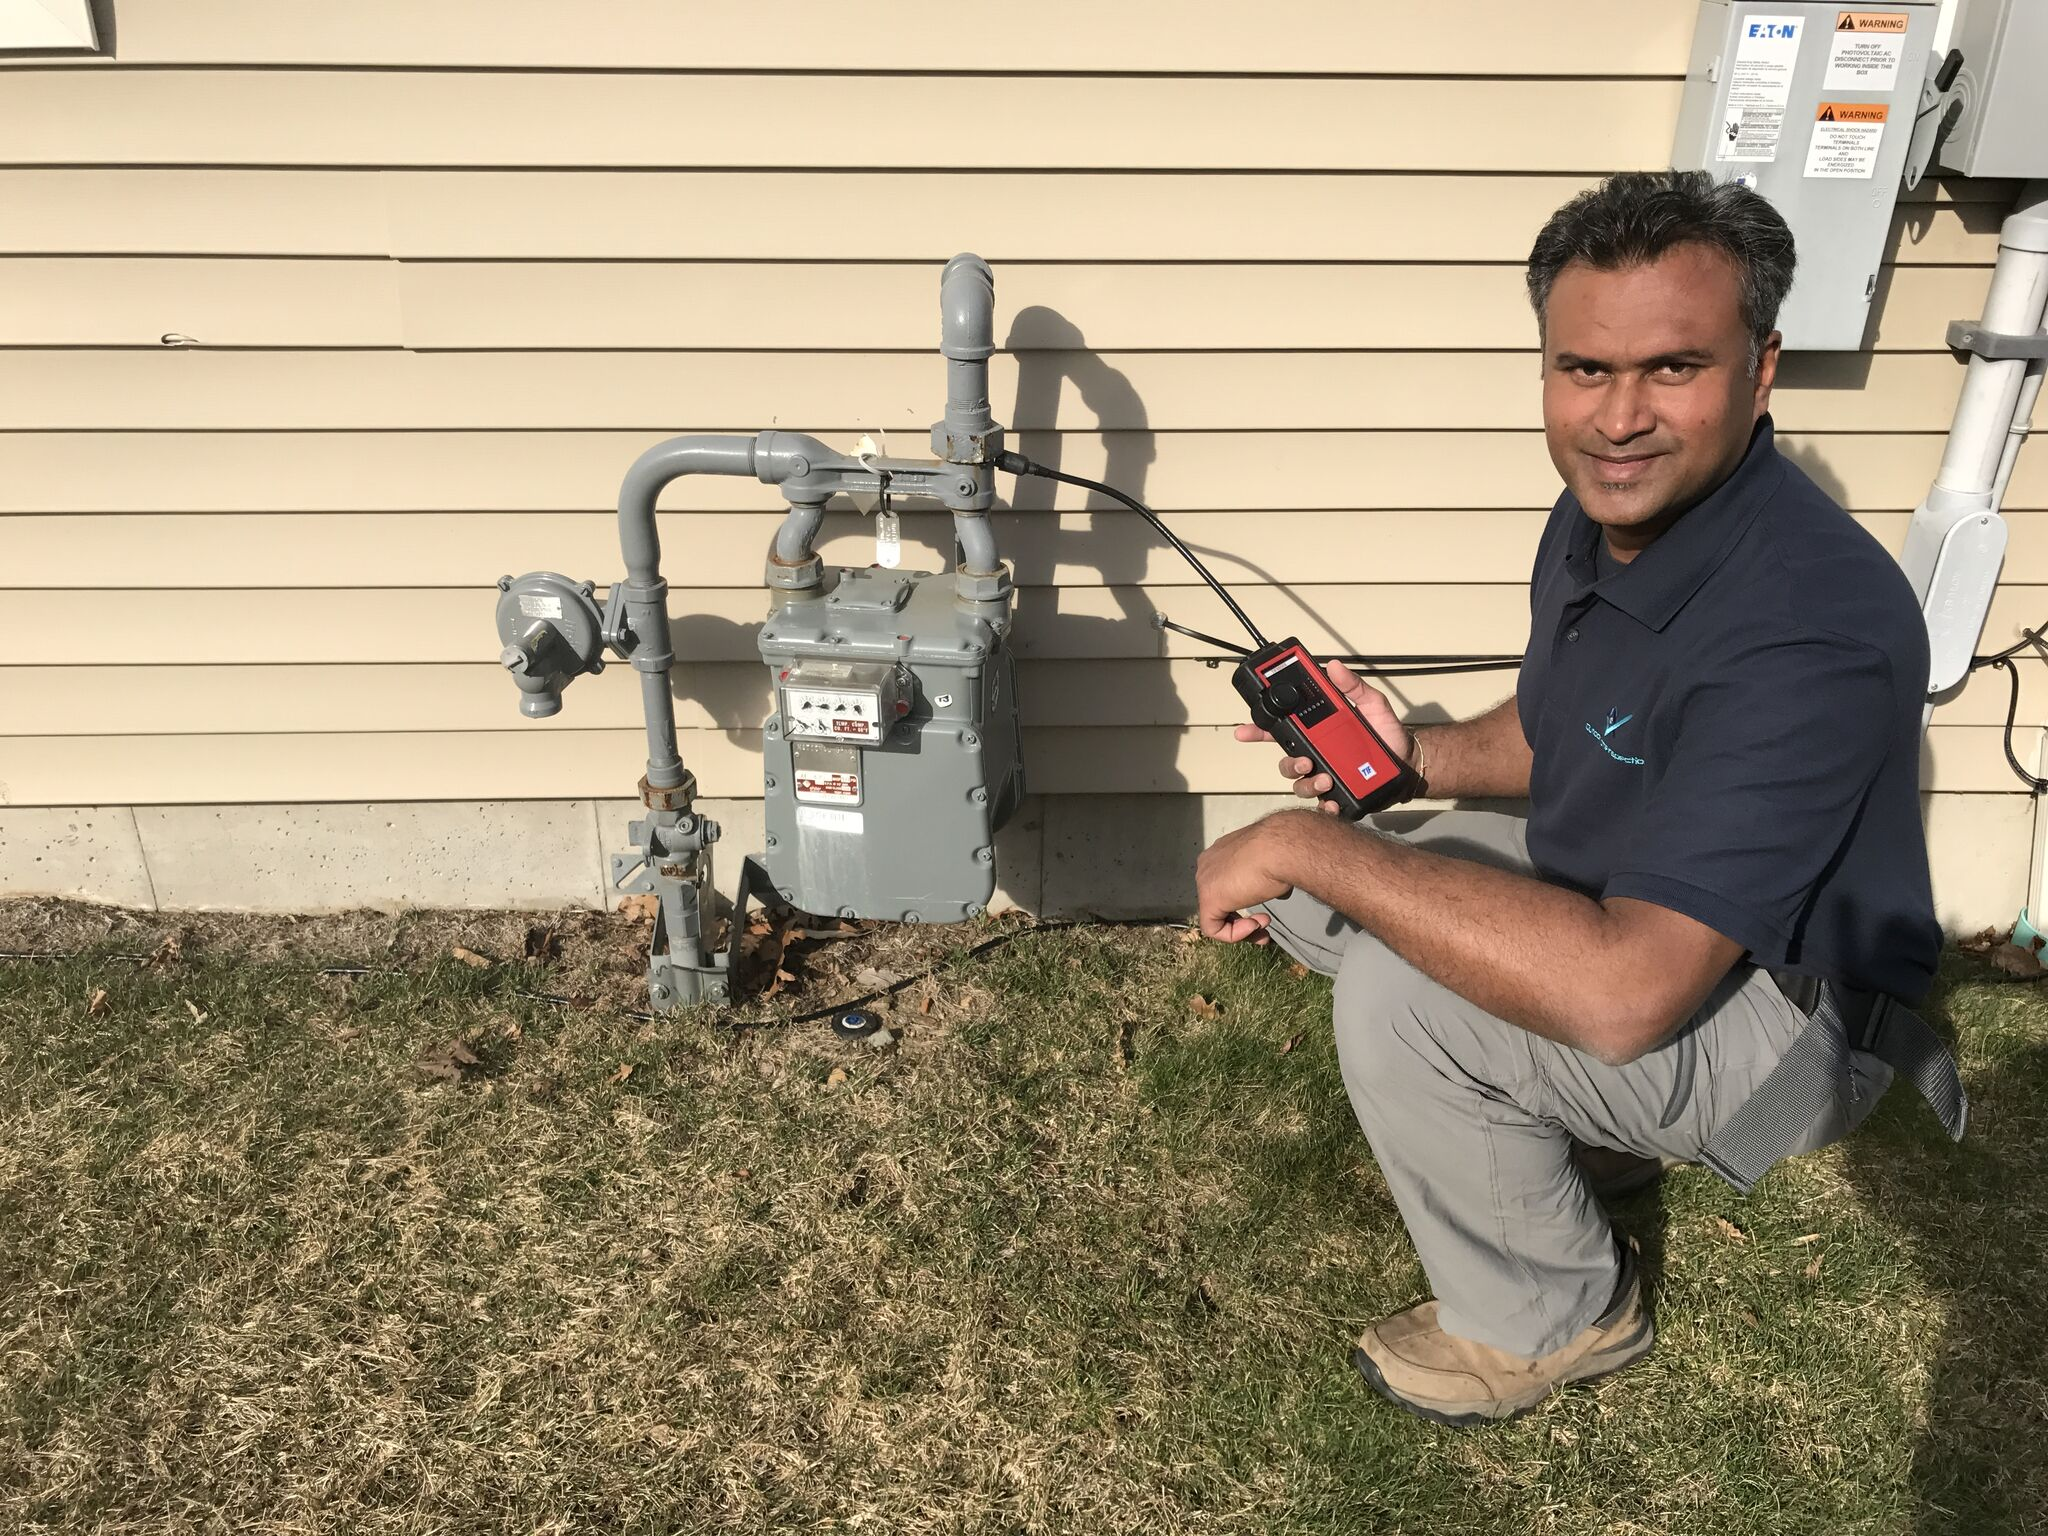 Home Inspector Mohan Singh of Outlook Home Inspection